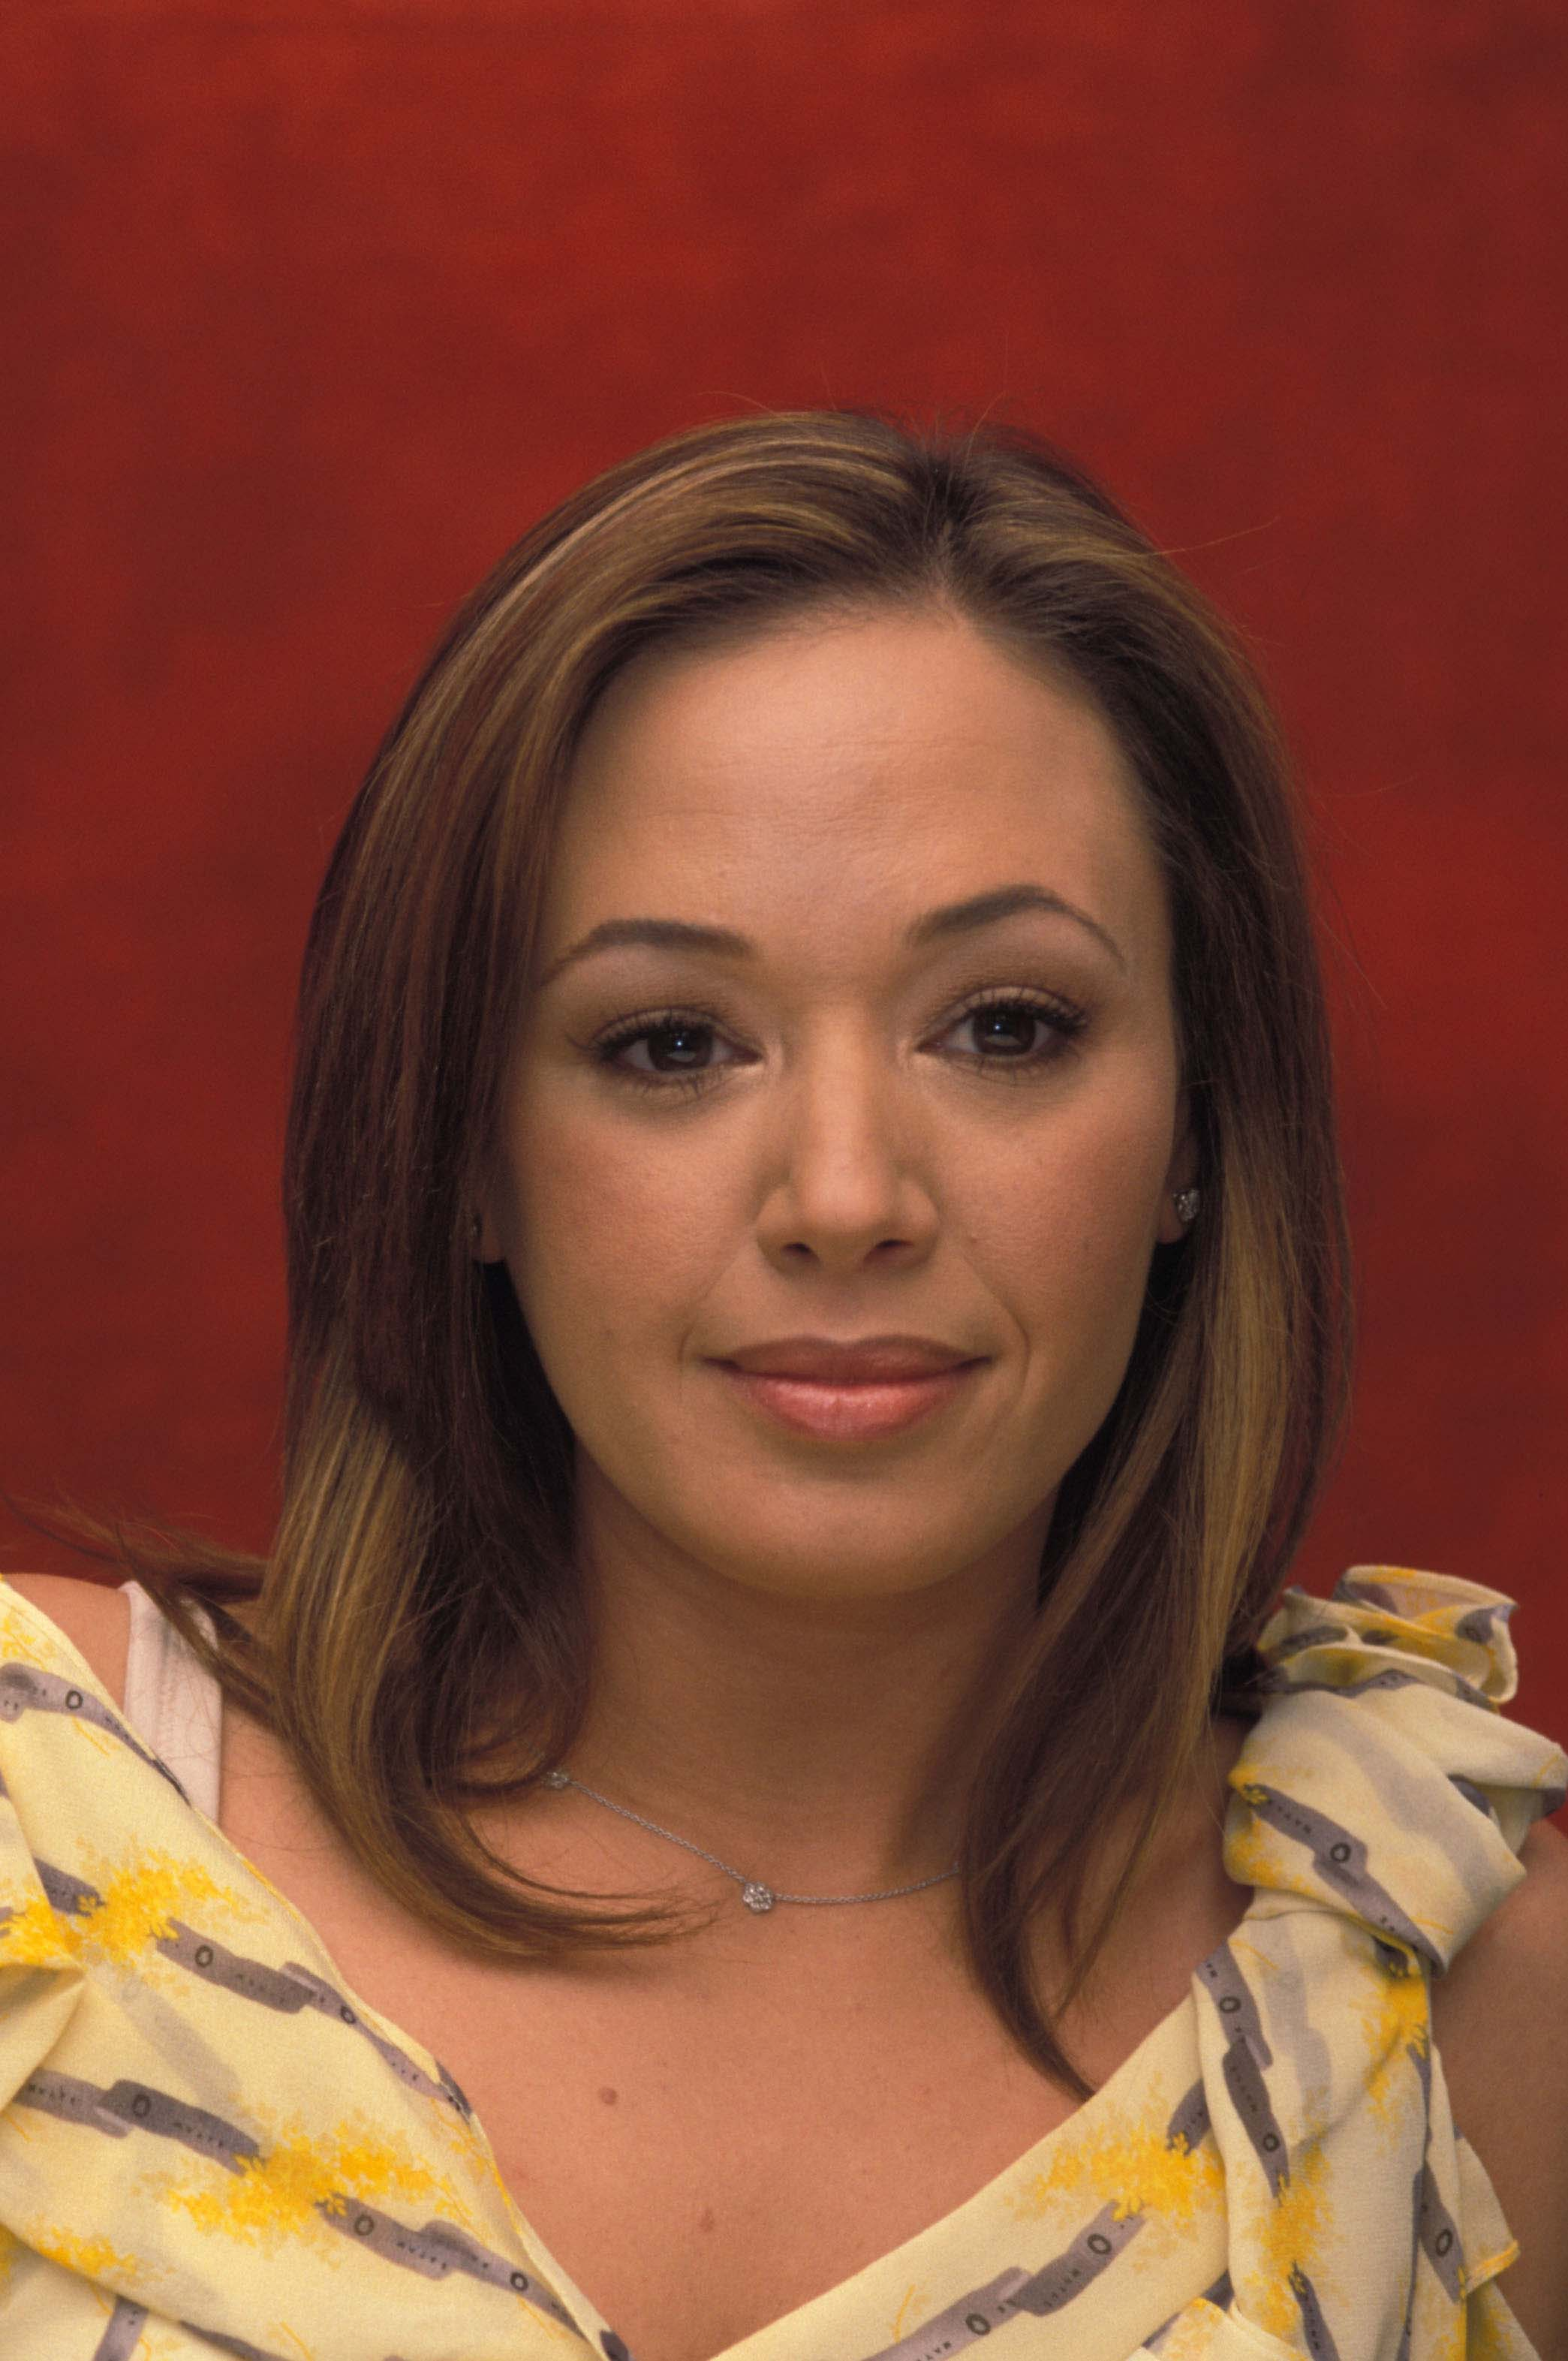 Leah Remini: King of Queens actress explains why she left